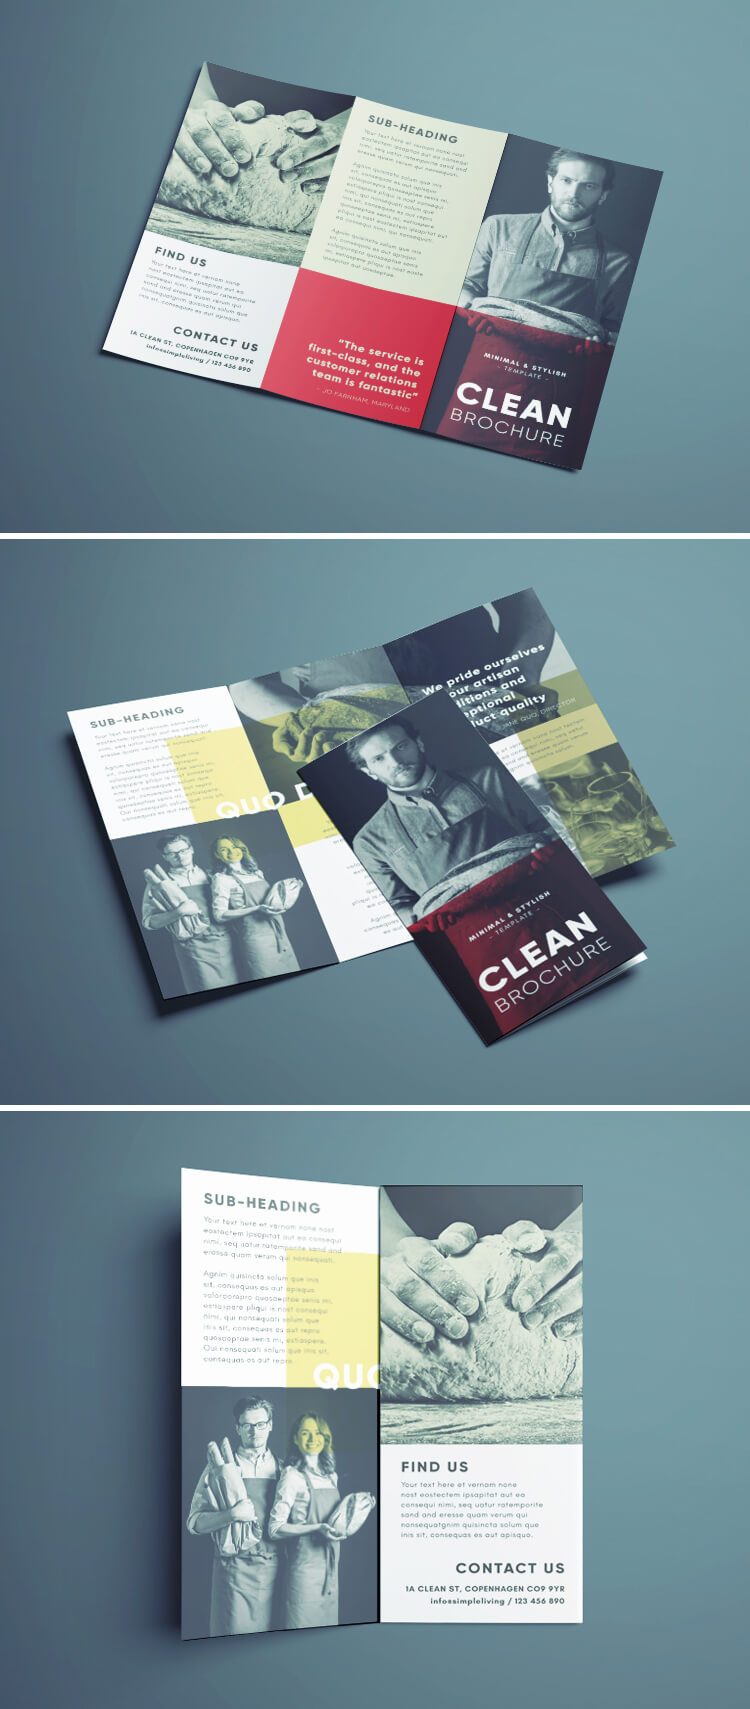 Stylish Clean Brochure Template - Free Download - Clean Layout with Hipster Photography and Simple Typography